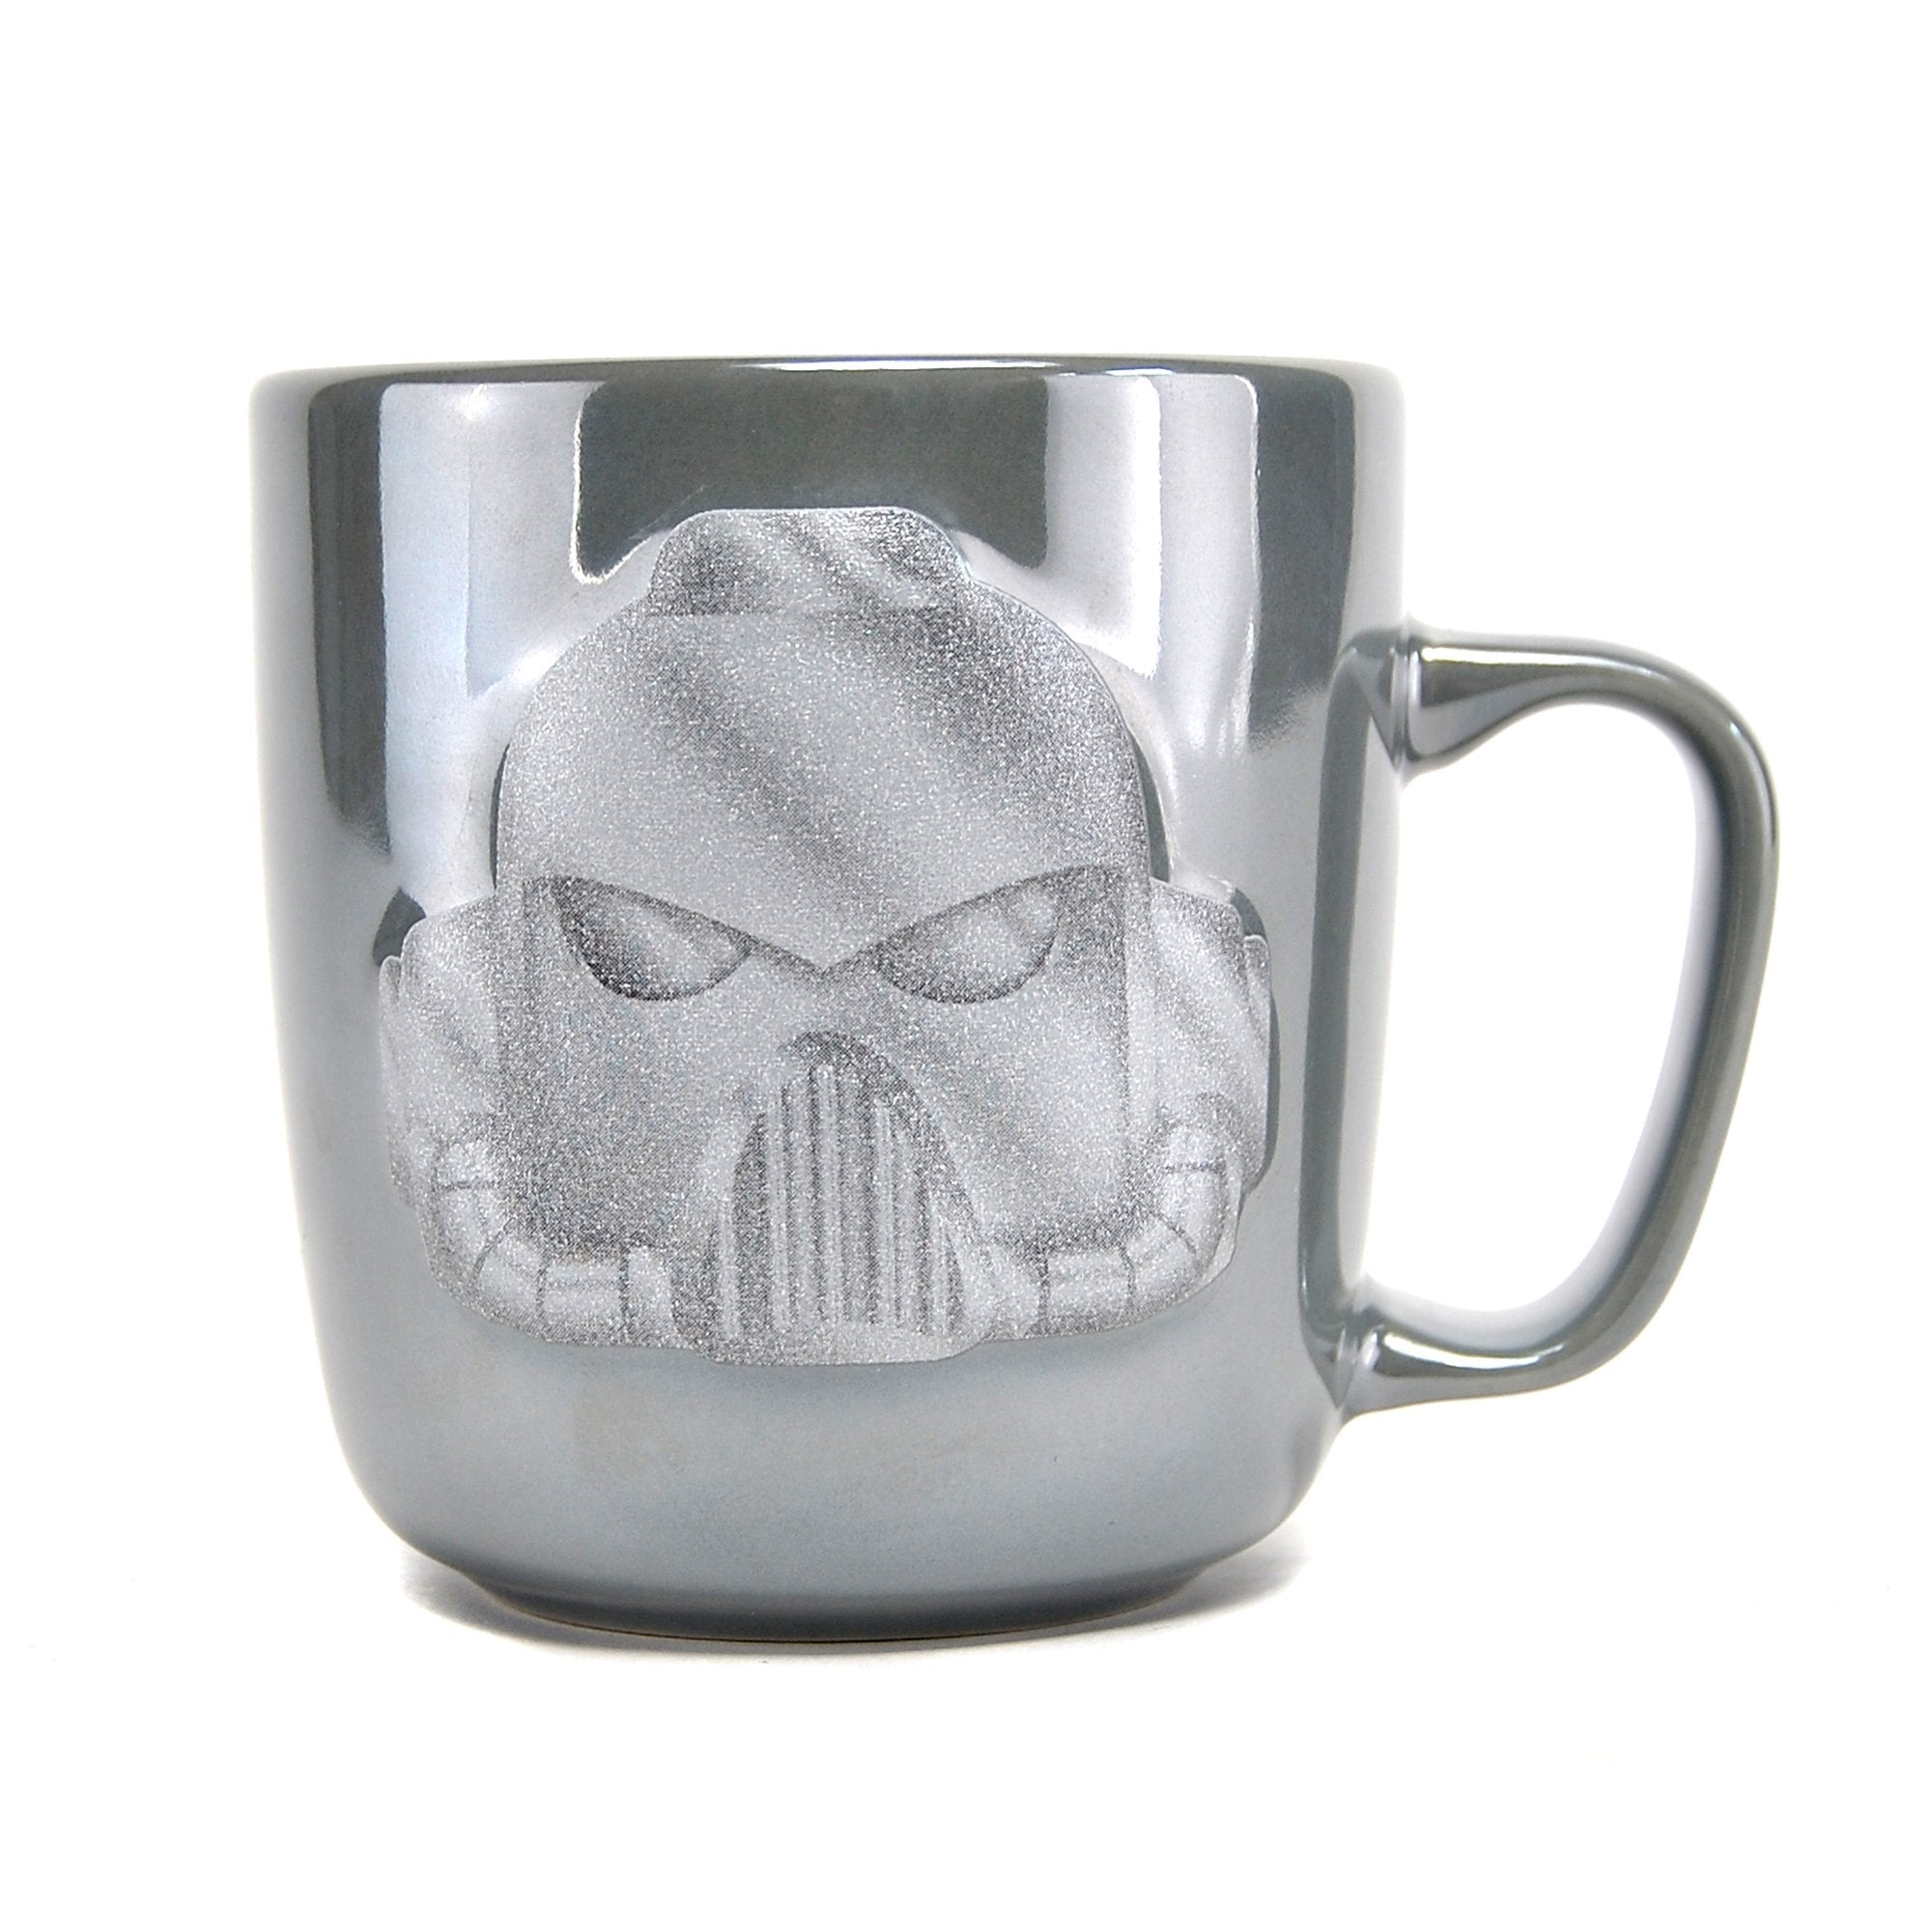 Warhammer 40,000 Metallic Mug - Space Marine - Half Moon Bay US